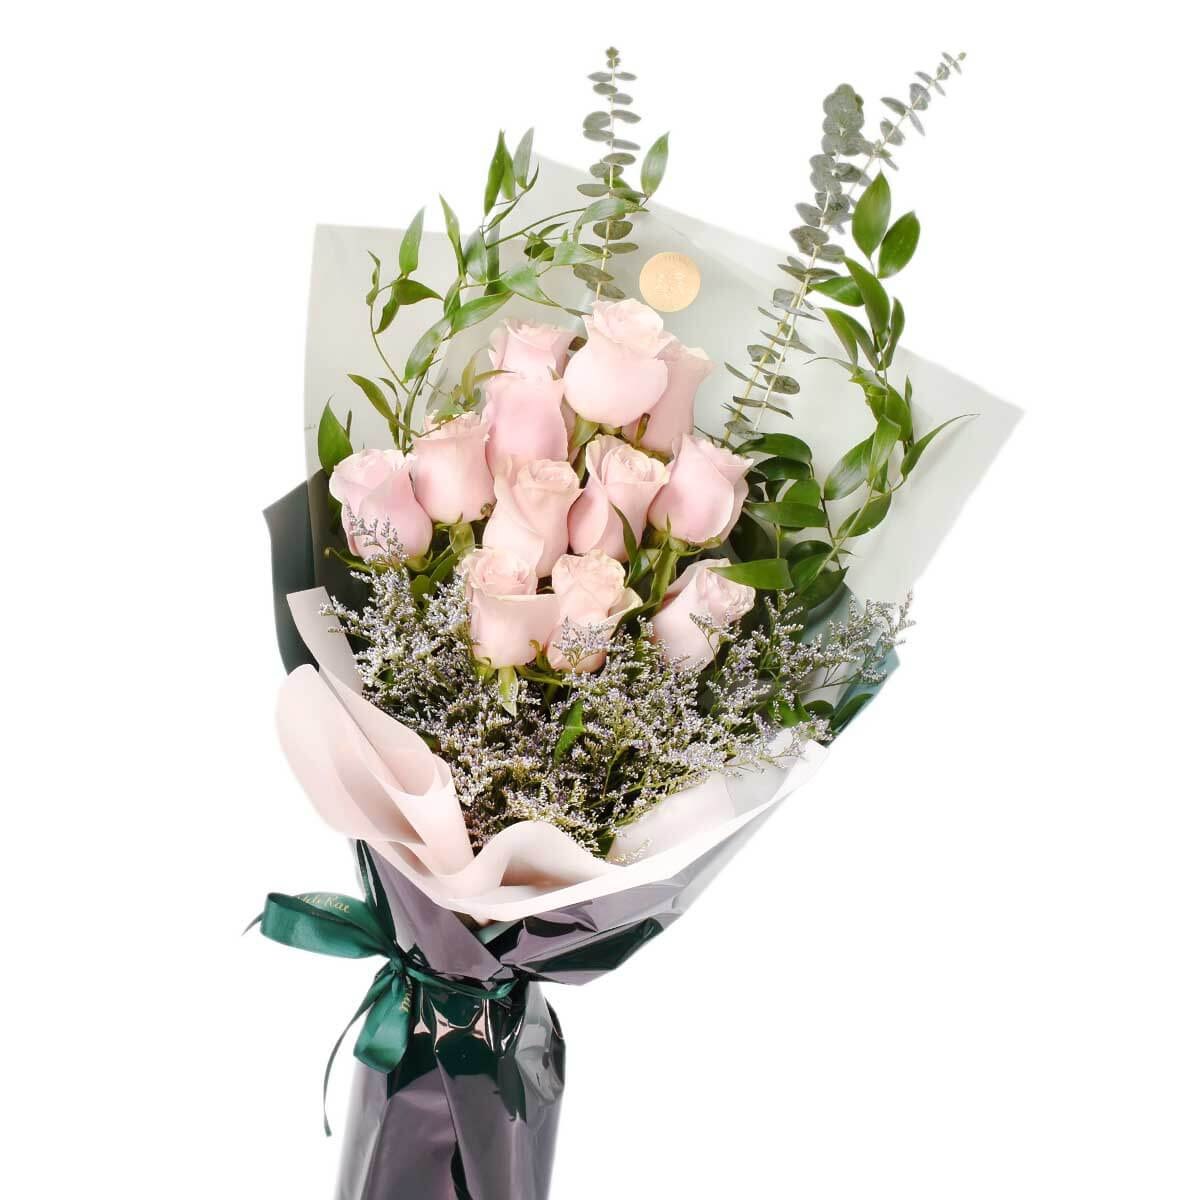 Vancouver Canada Florist | Flower Delivery | Adele Rae